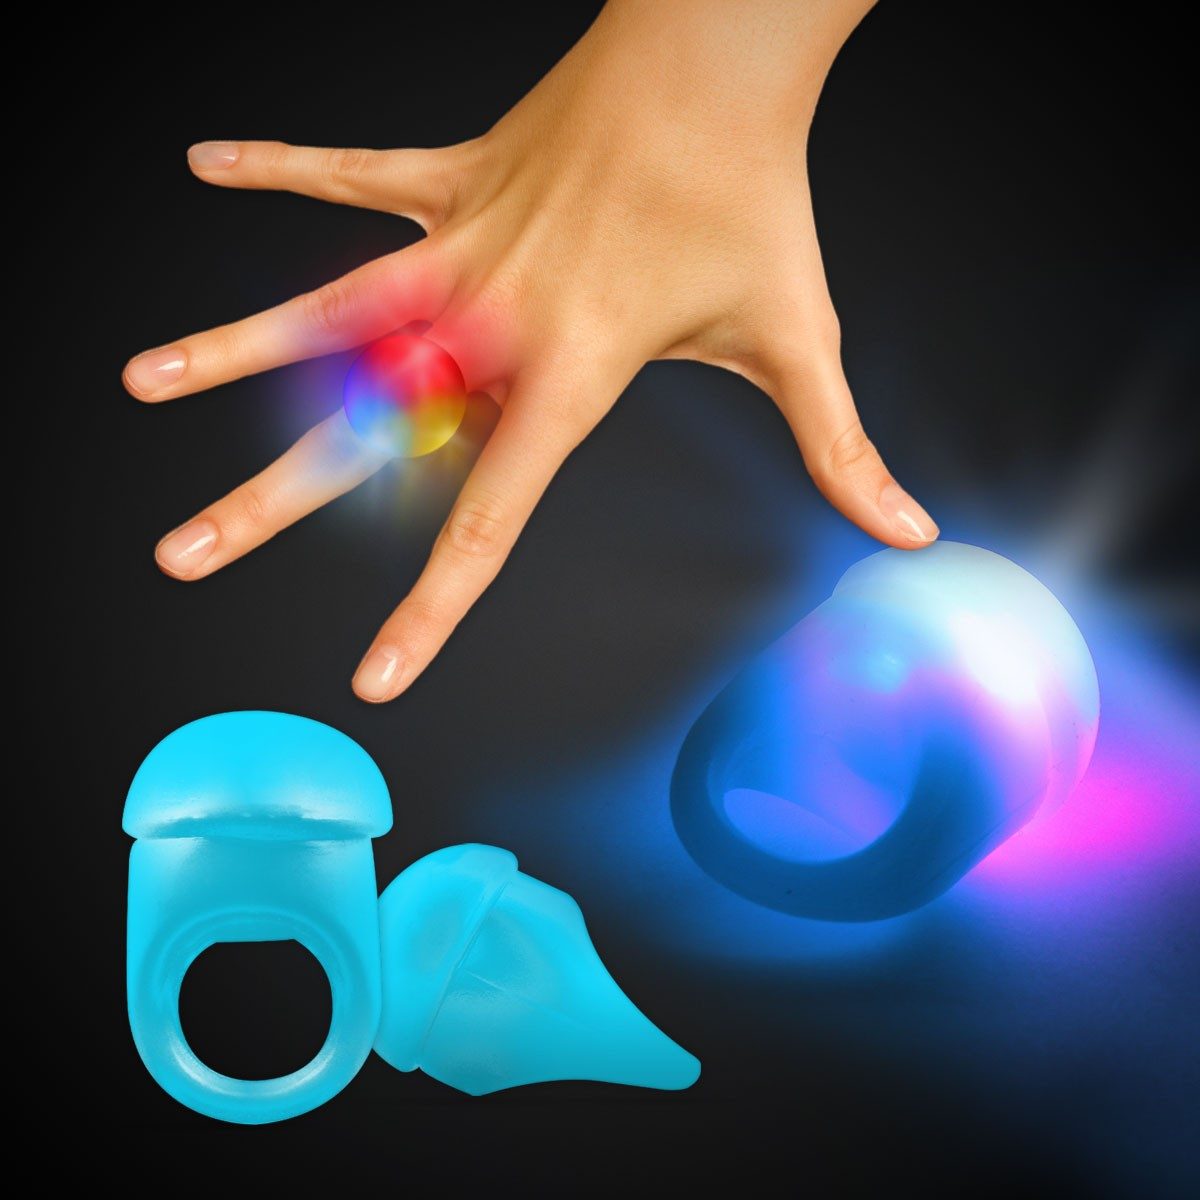 BLUE JELLY BUTTON RING WLEDS